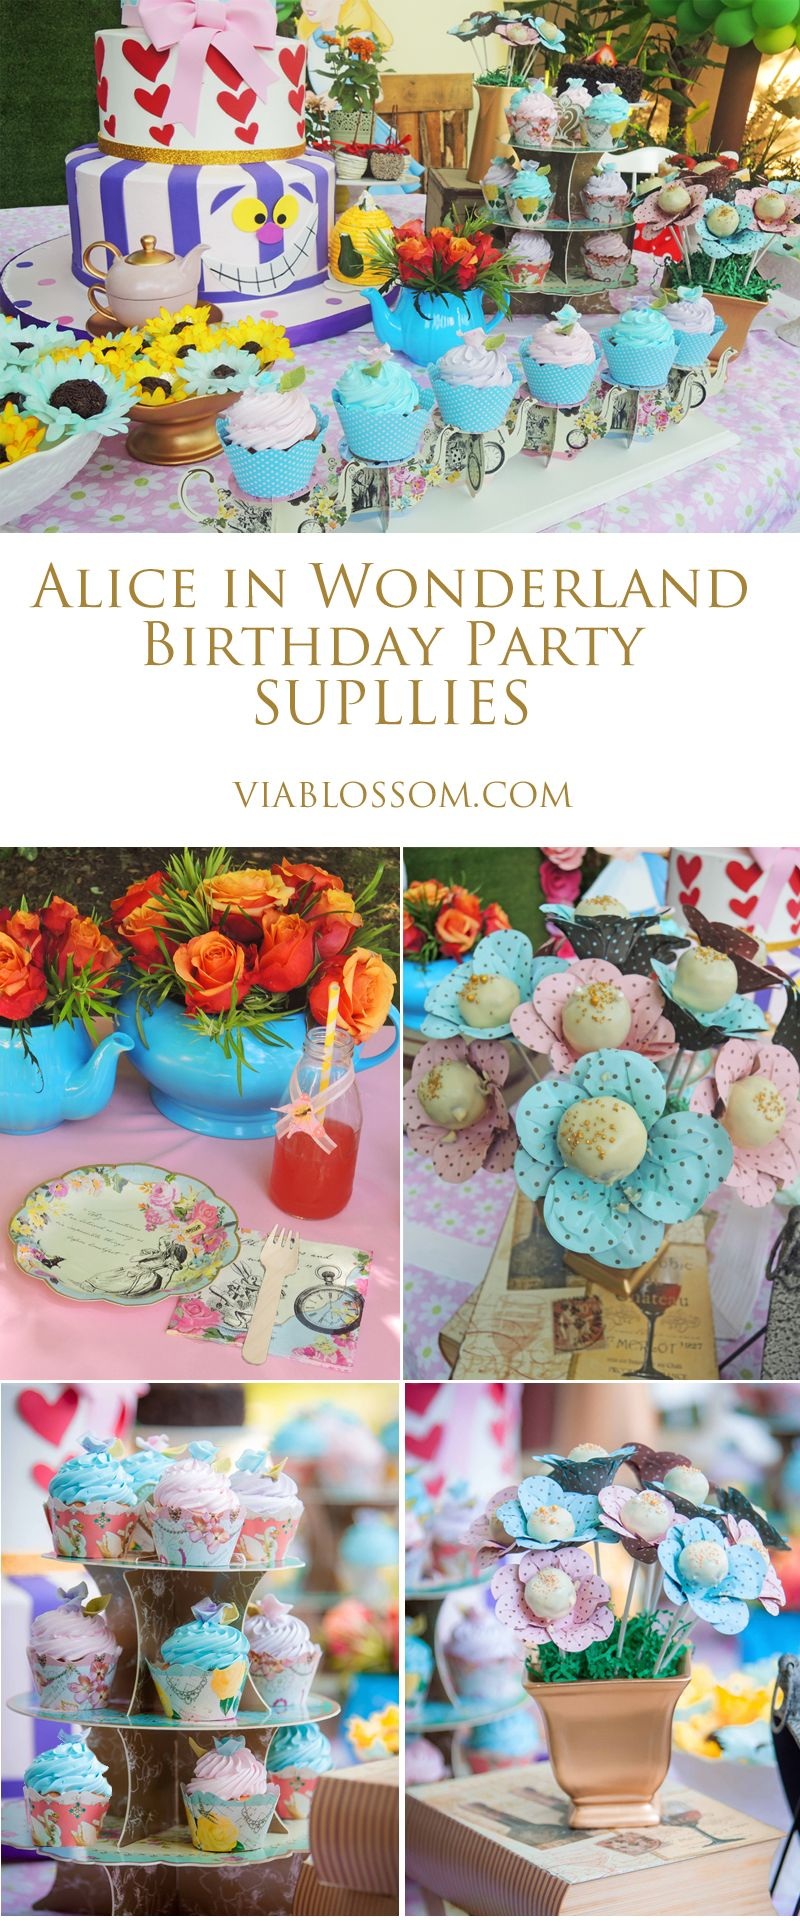 mad hatter teparty invitations pinterest%0A Magical Alice in Wonderland Party ideas and decorations  Ideal for a Mad  Hatter Tea Party